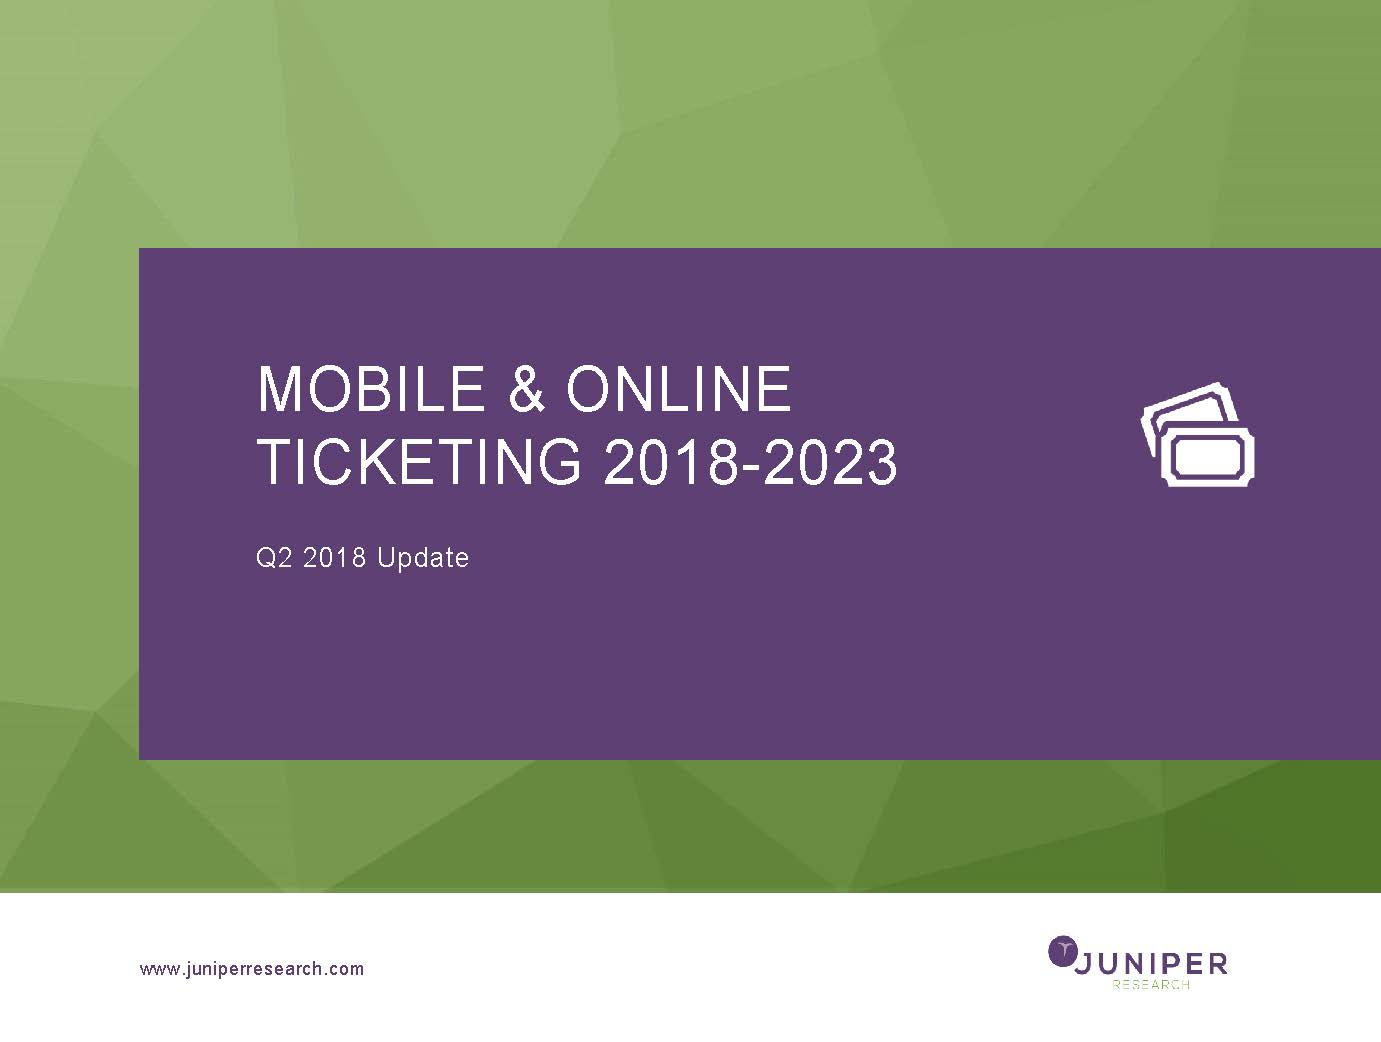 Mobile & Online Ticketing - Q2 2018